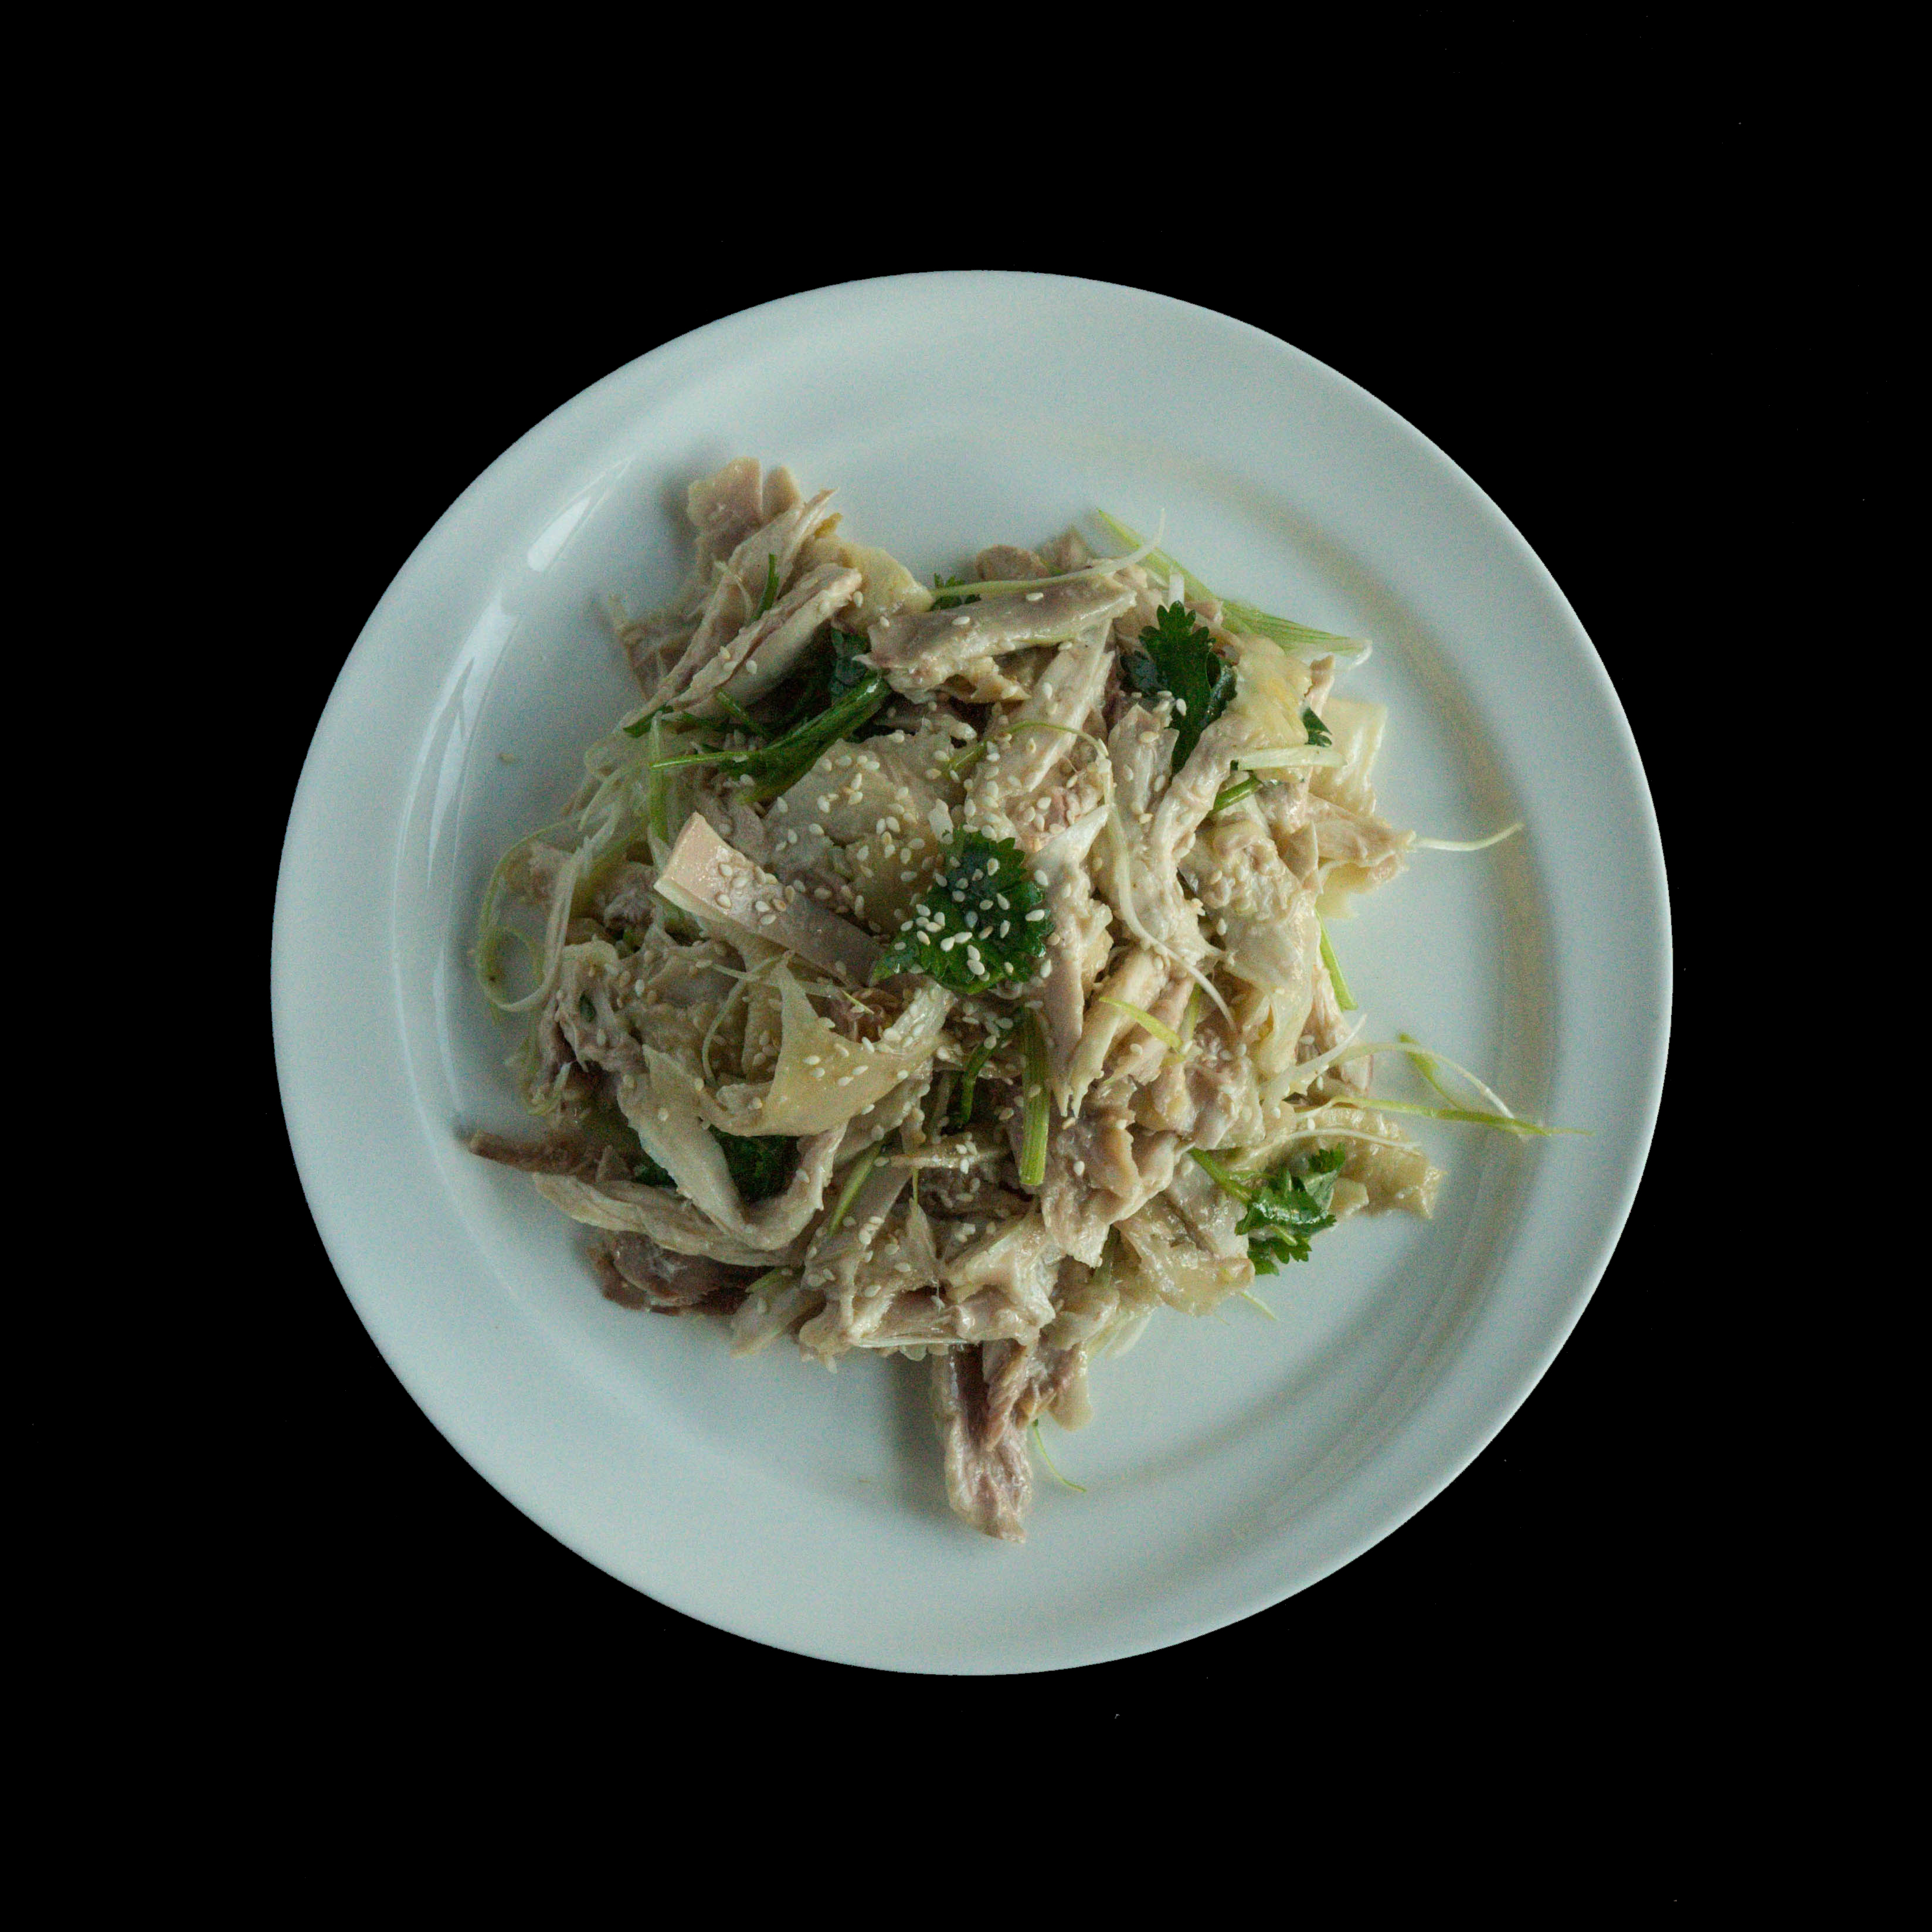 55. 手撕盐焗鸡 Shredded Salty Ginger Chicken Image